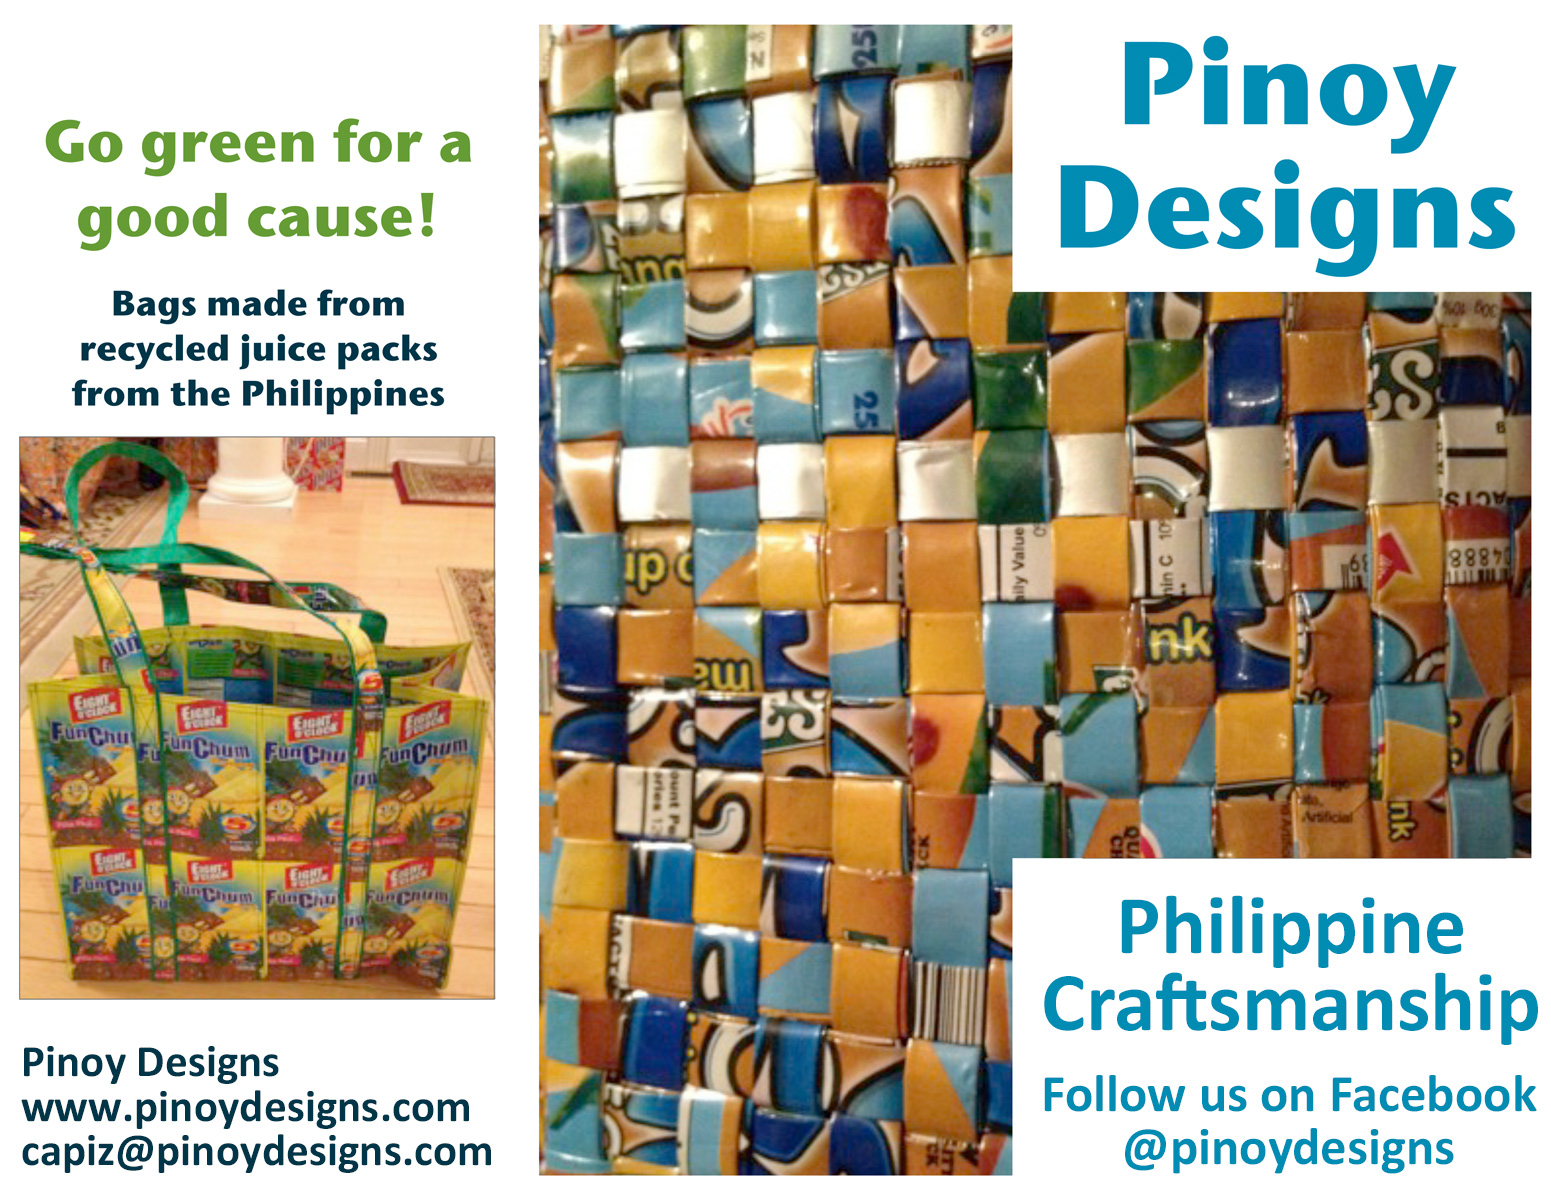 Bags made from recycled juice packs from the Philippines